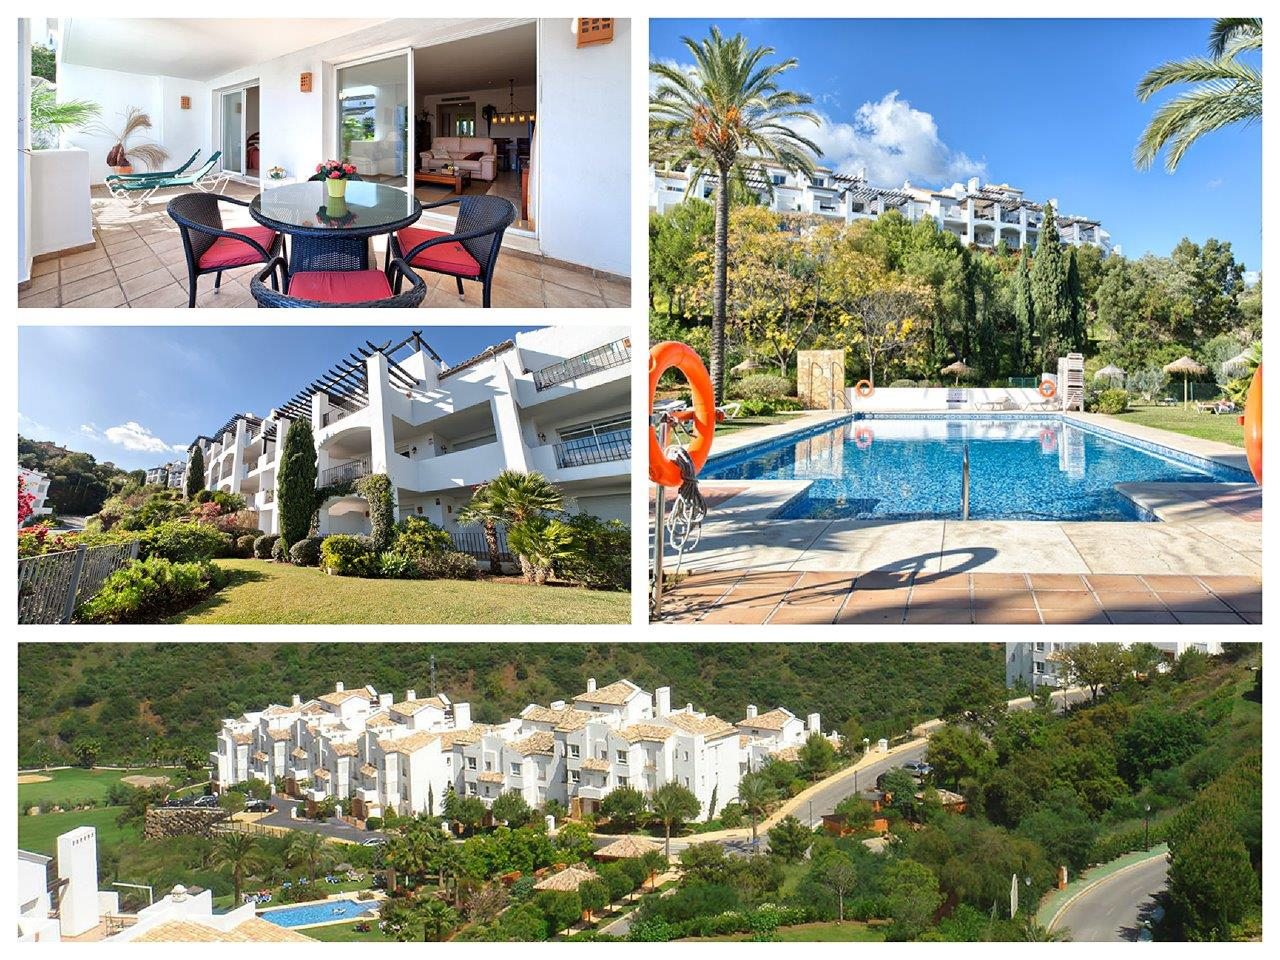 Apartment in Altos de la Quinta for sale (Benahavis)